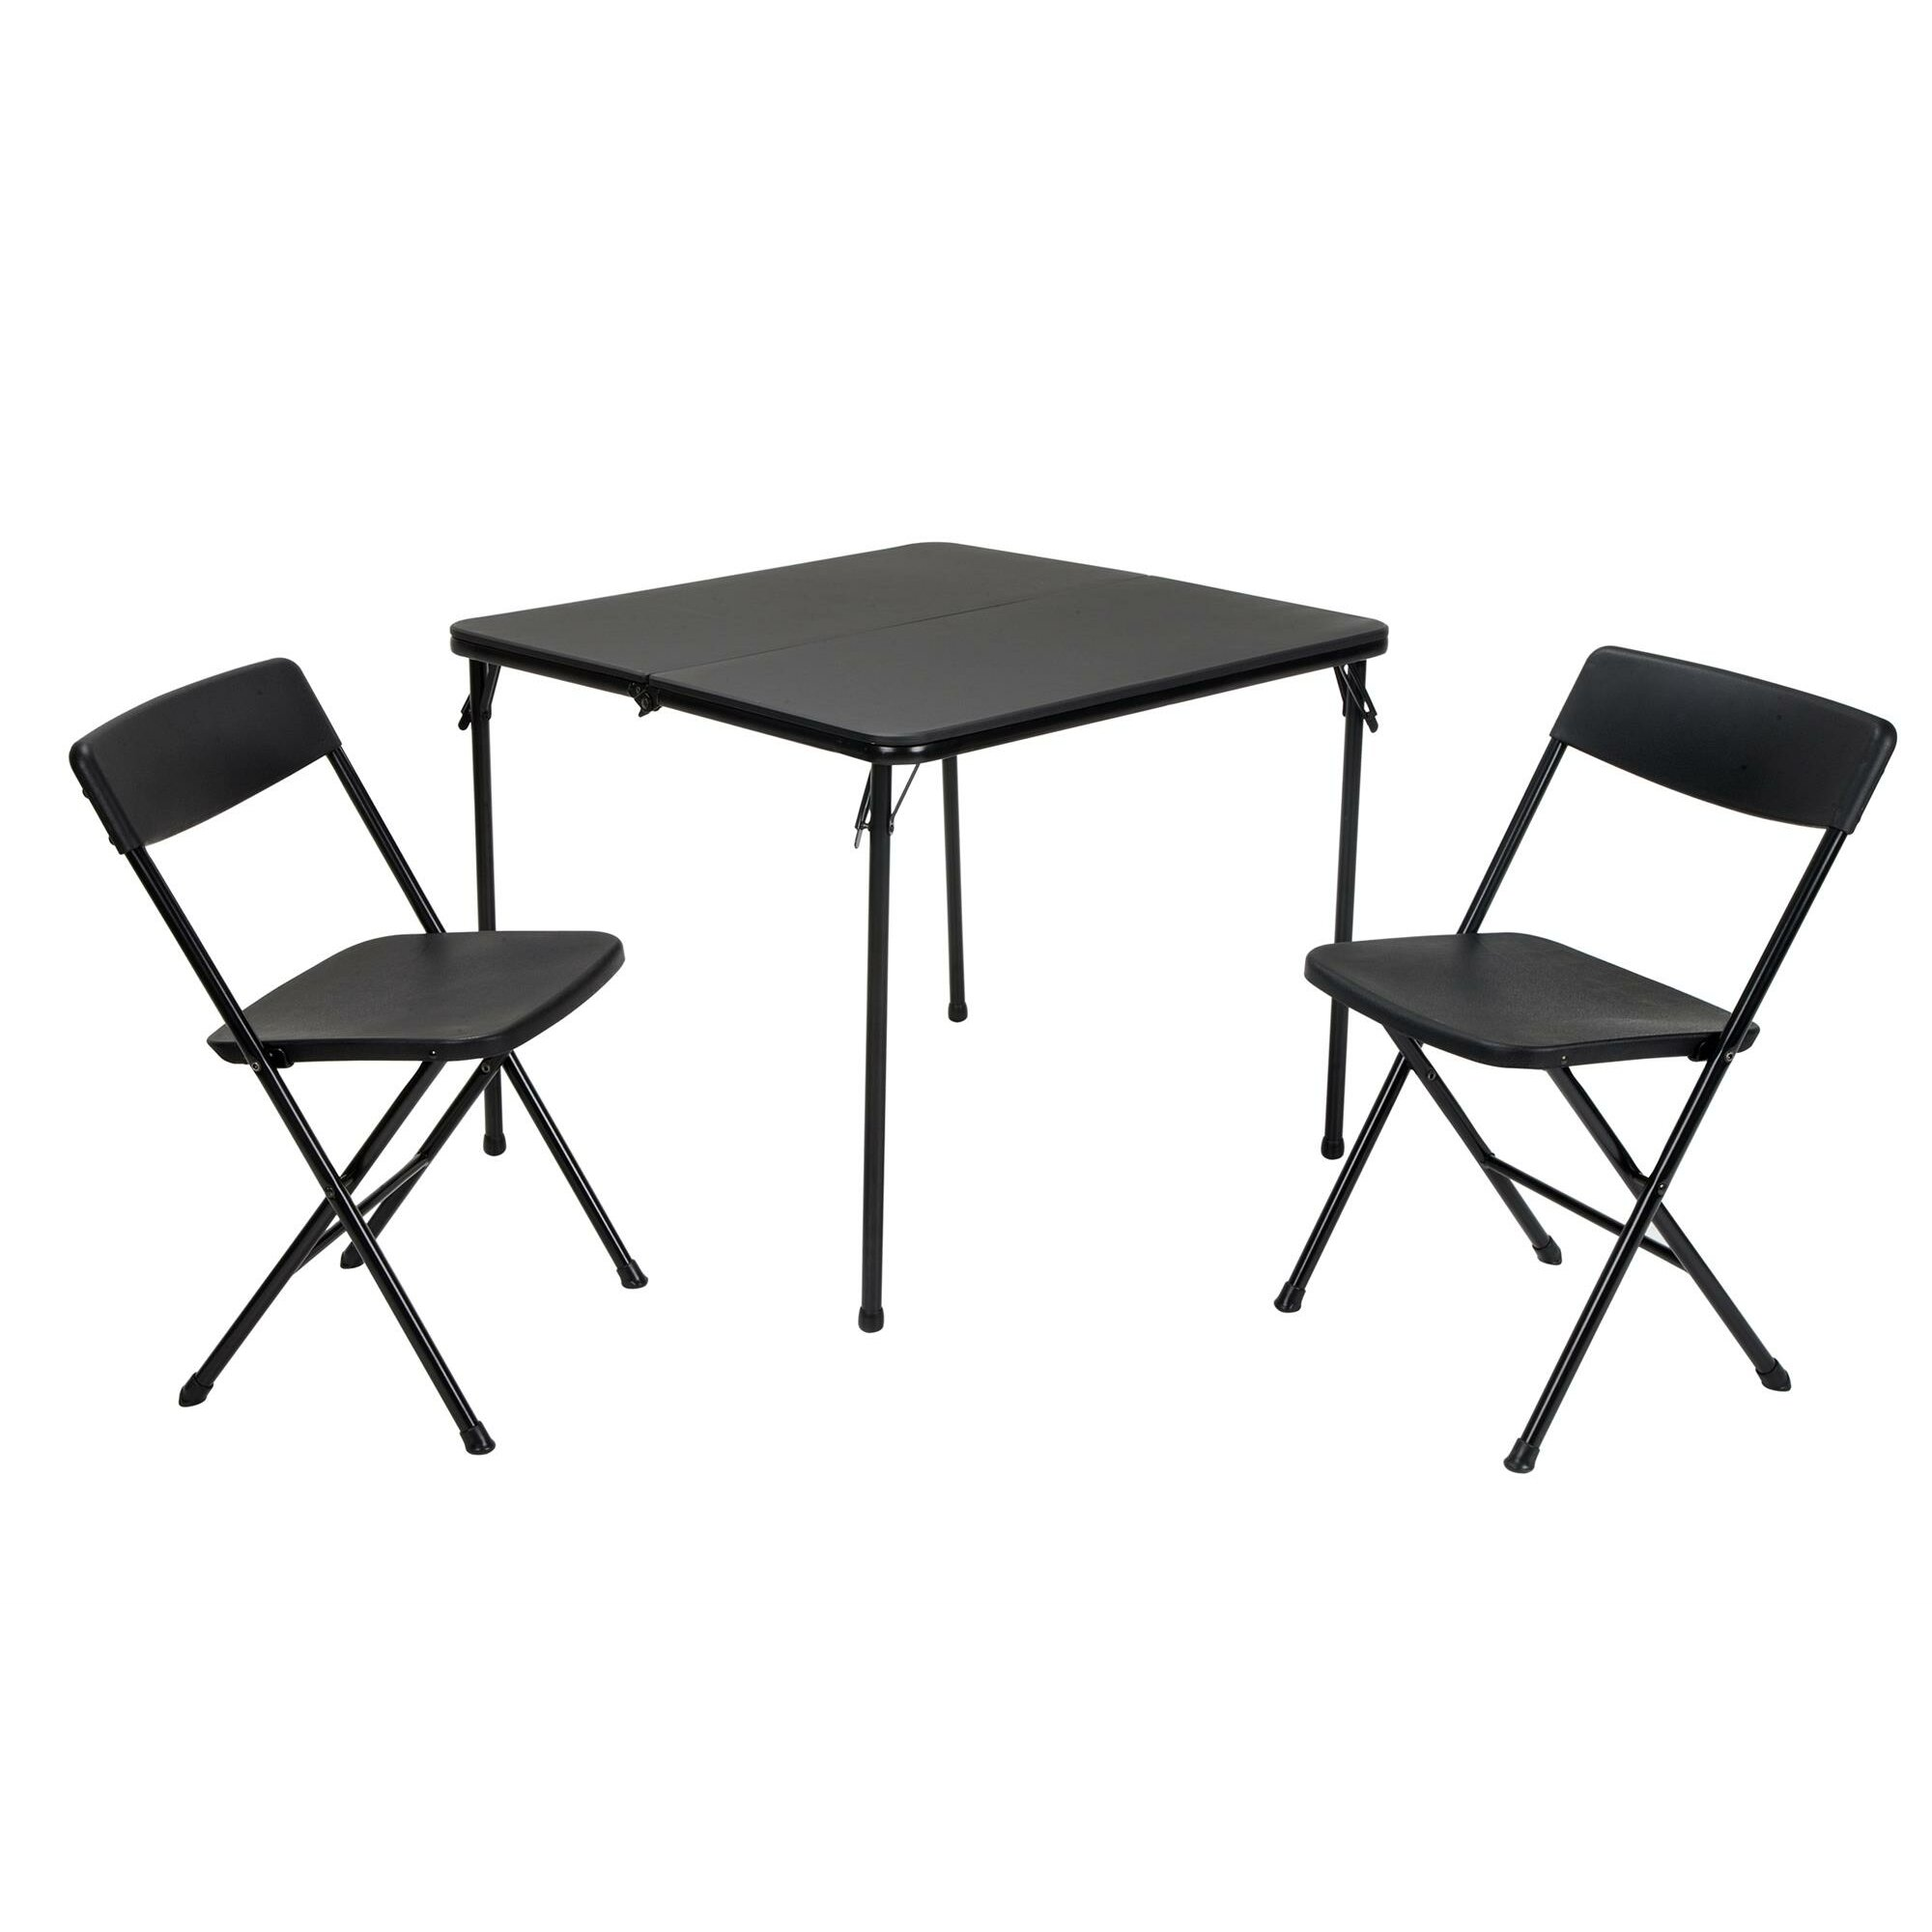 59 Table And Chair Set Walmart Cosco 5 Piece Folding: Cosco Home And Office 3 Piece Indoor/Outdoor Centre Fold